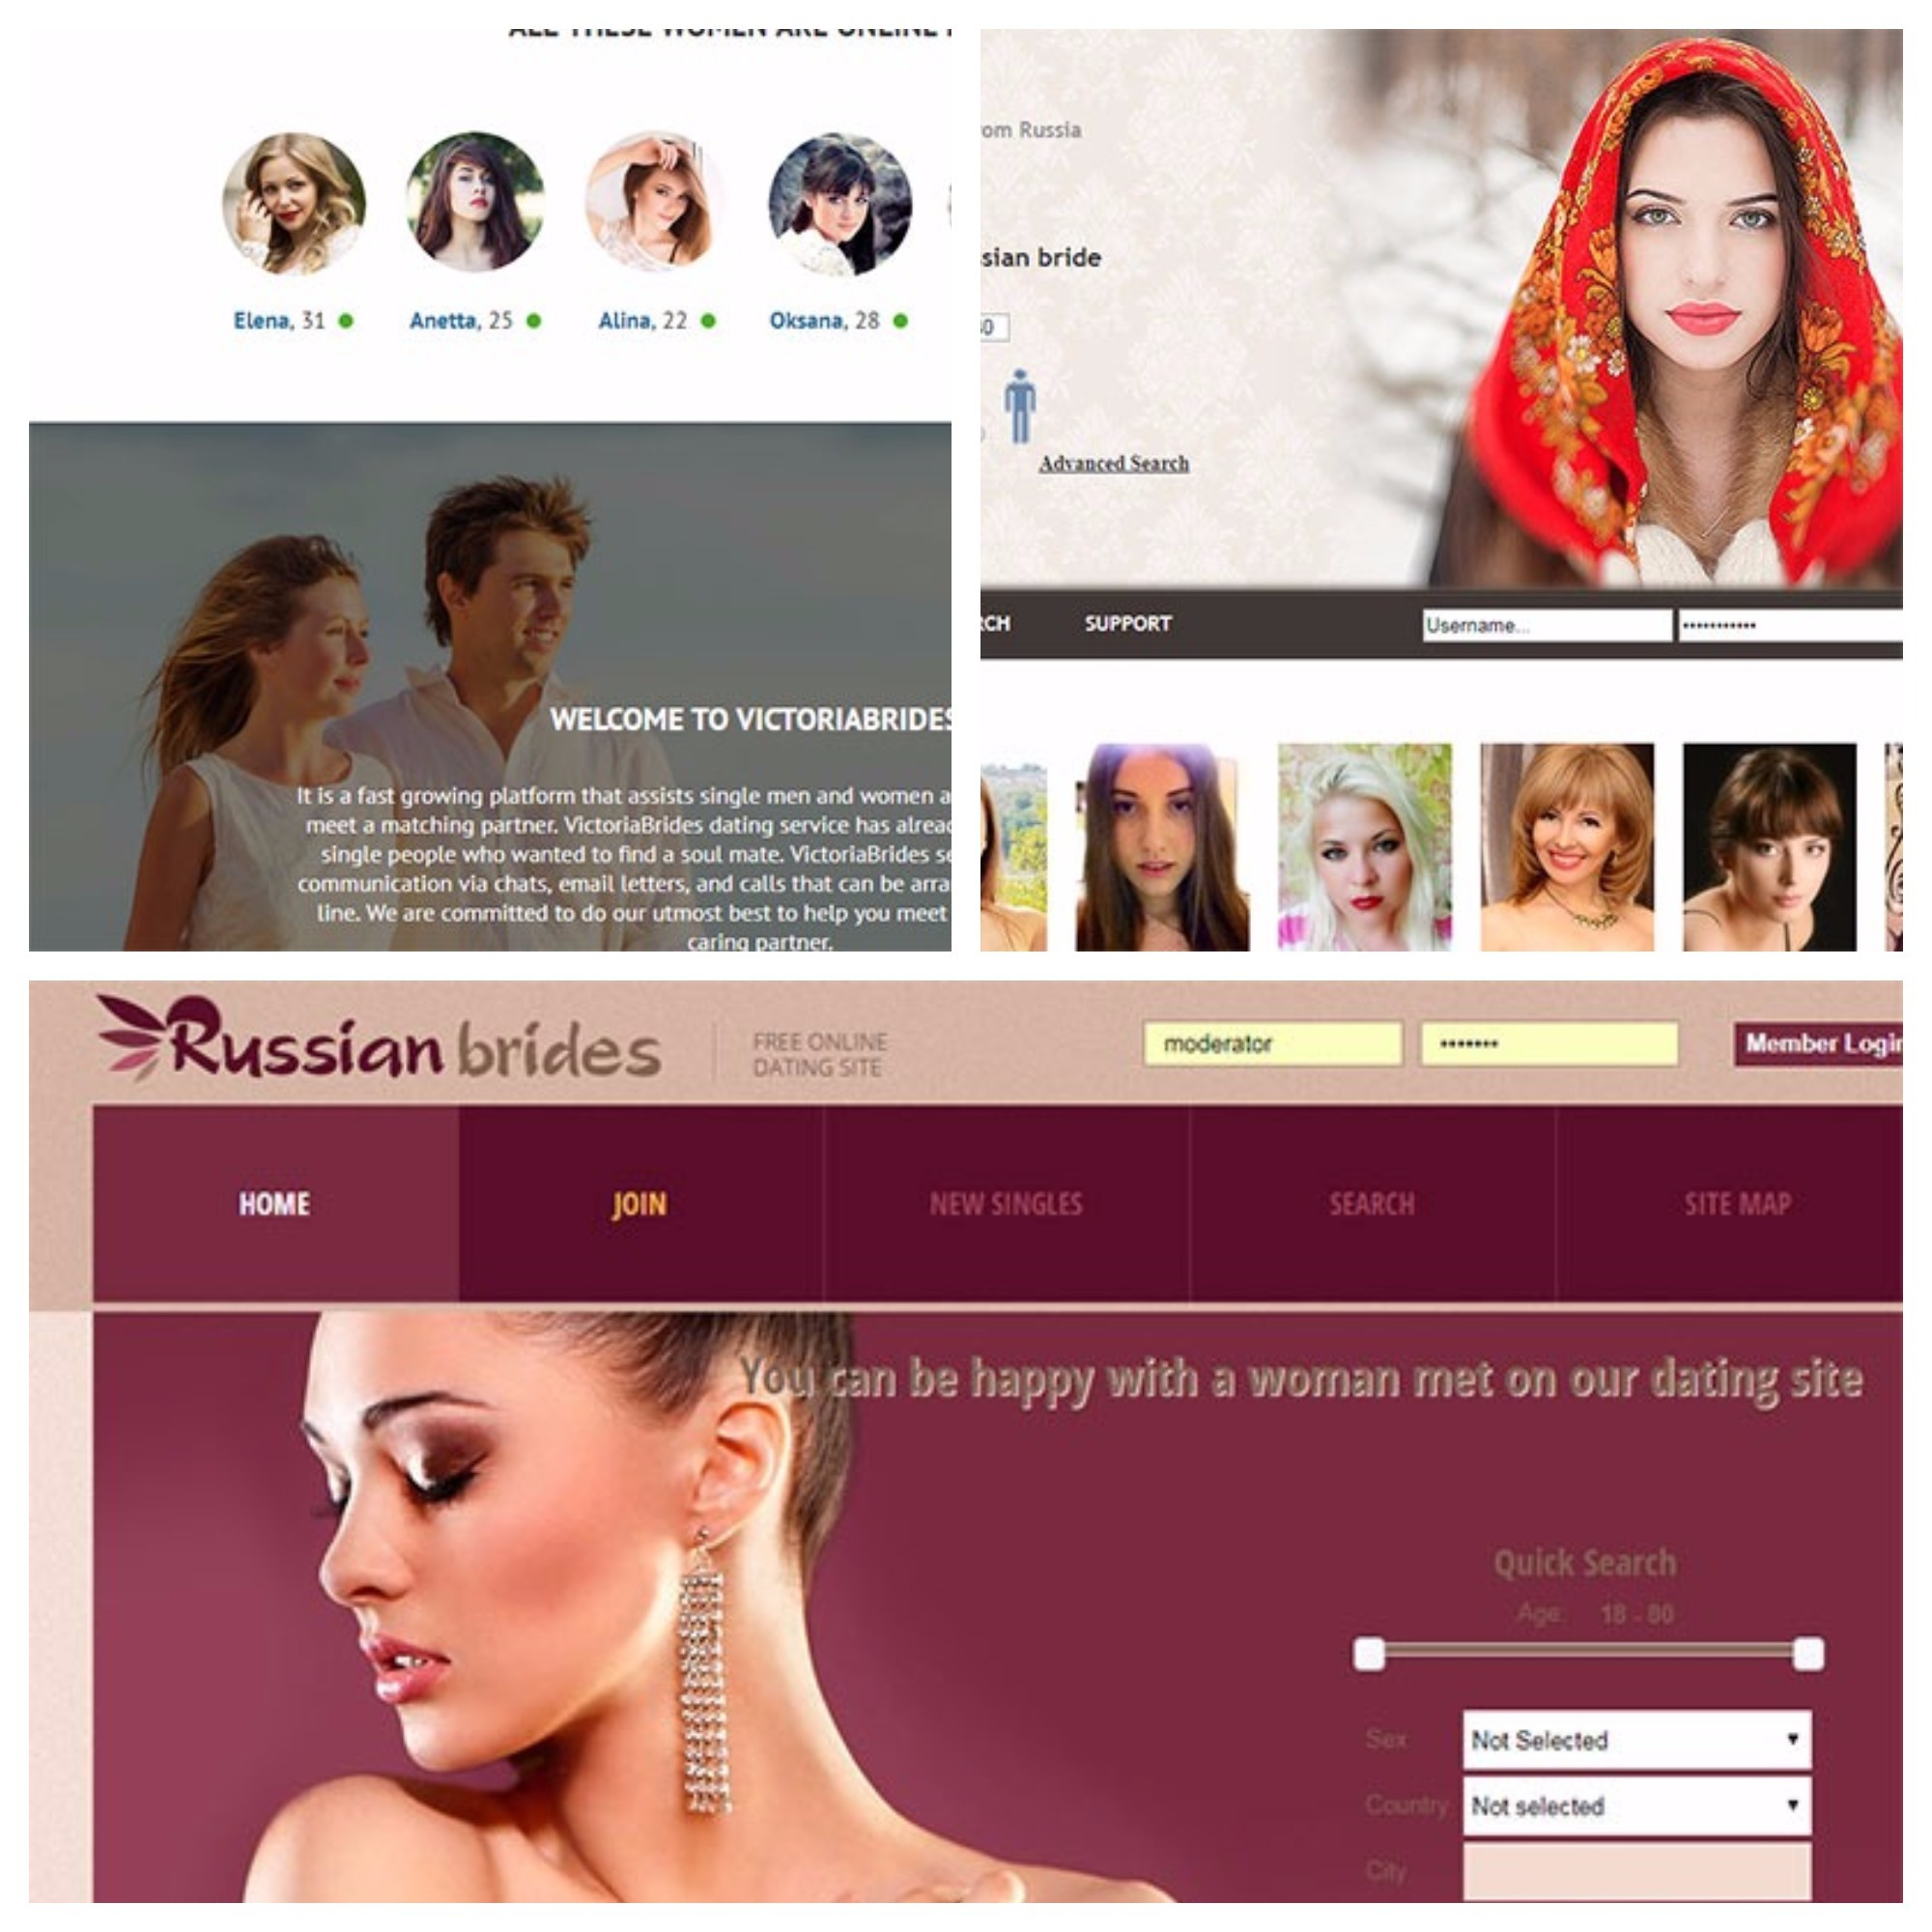 Most popular Ukrainian and Russian dating sites 2017